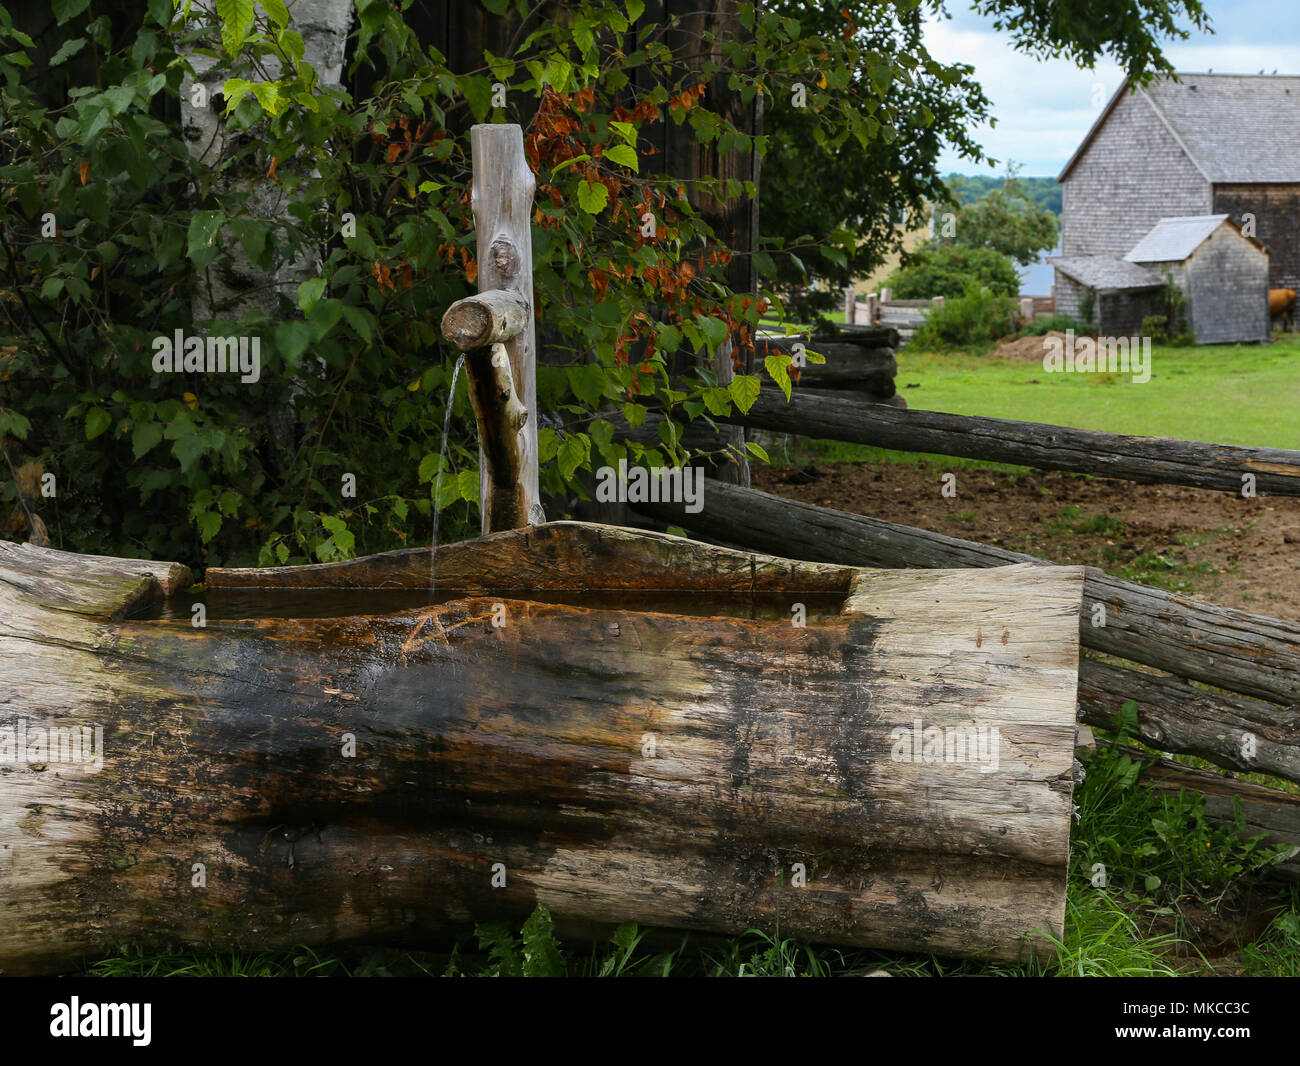 Water trough carved in a tree log with tricking stream of water coming from a wooden spigot at Kings Landing Historic Settlement, New Brunswick, Canad. - Stock Image